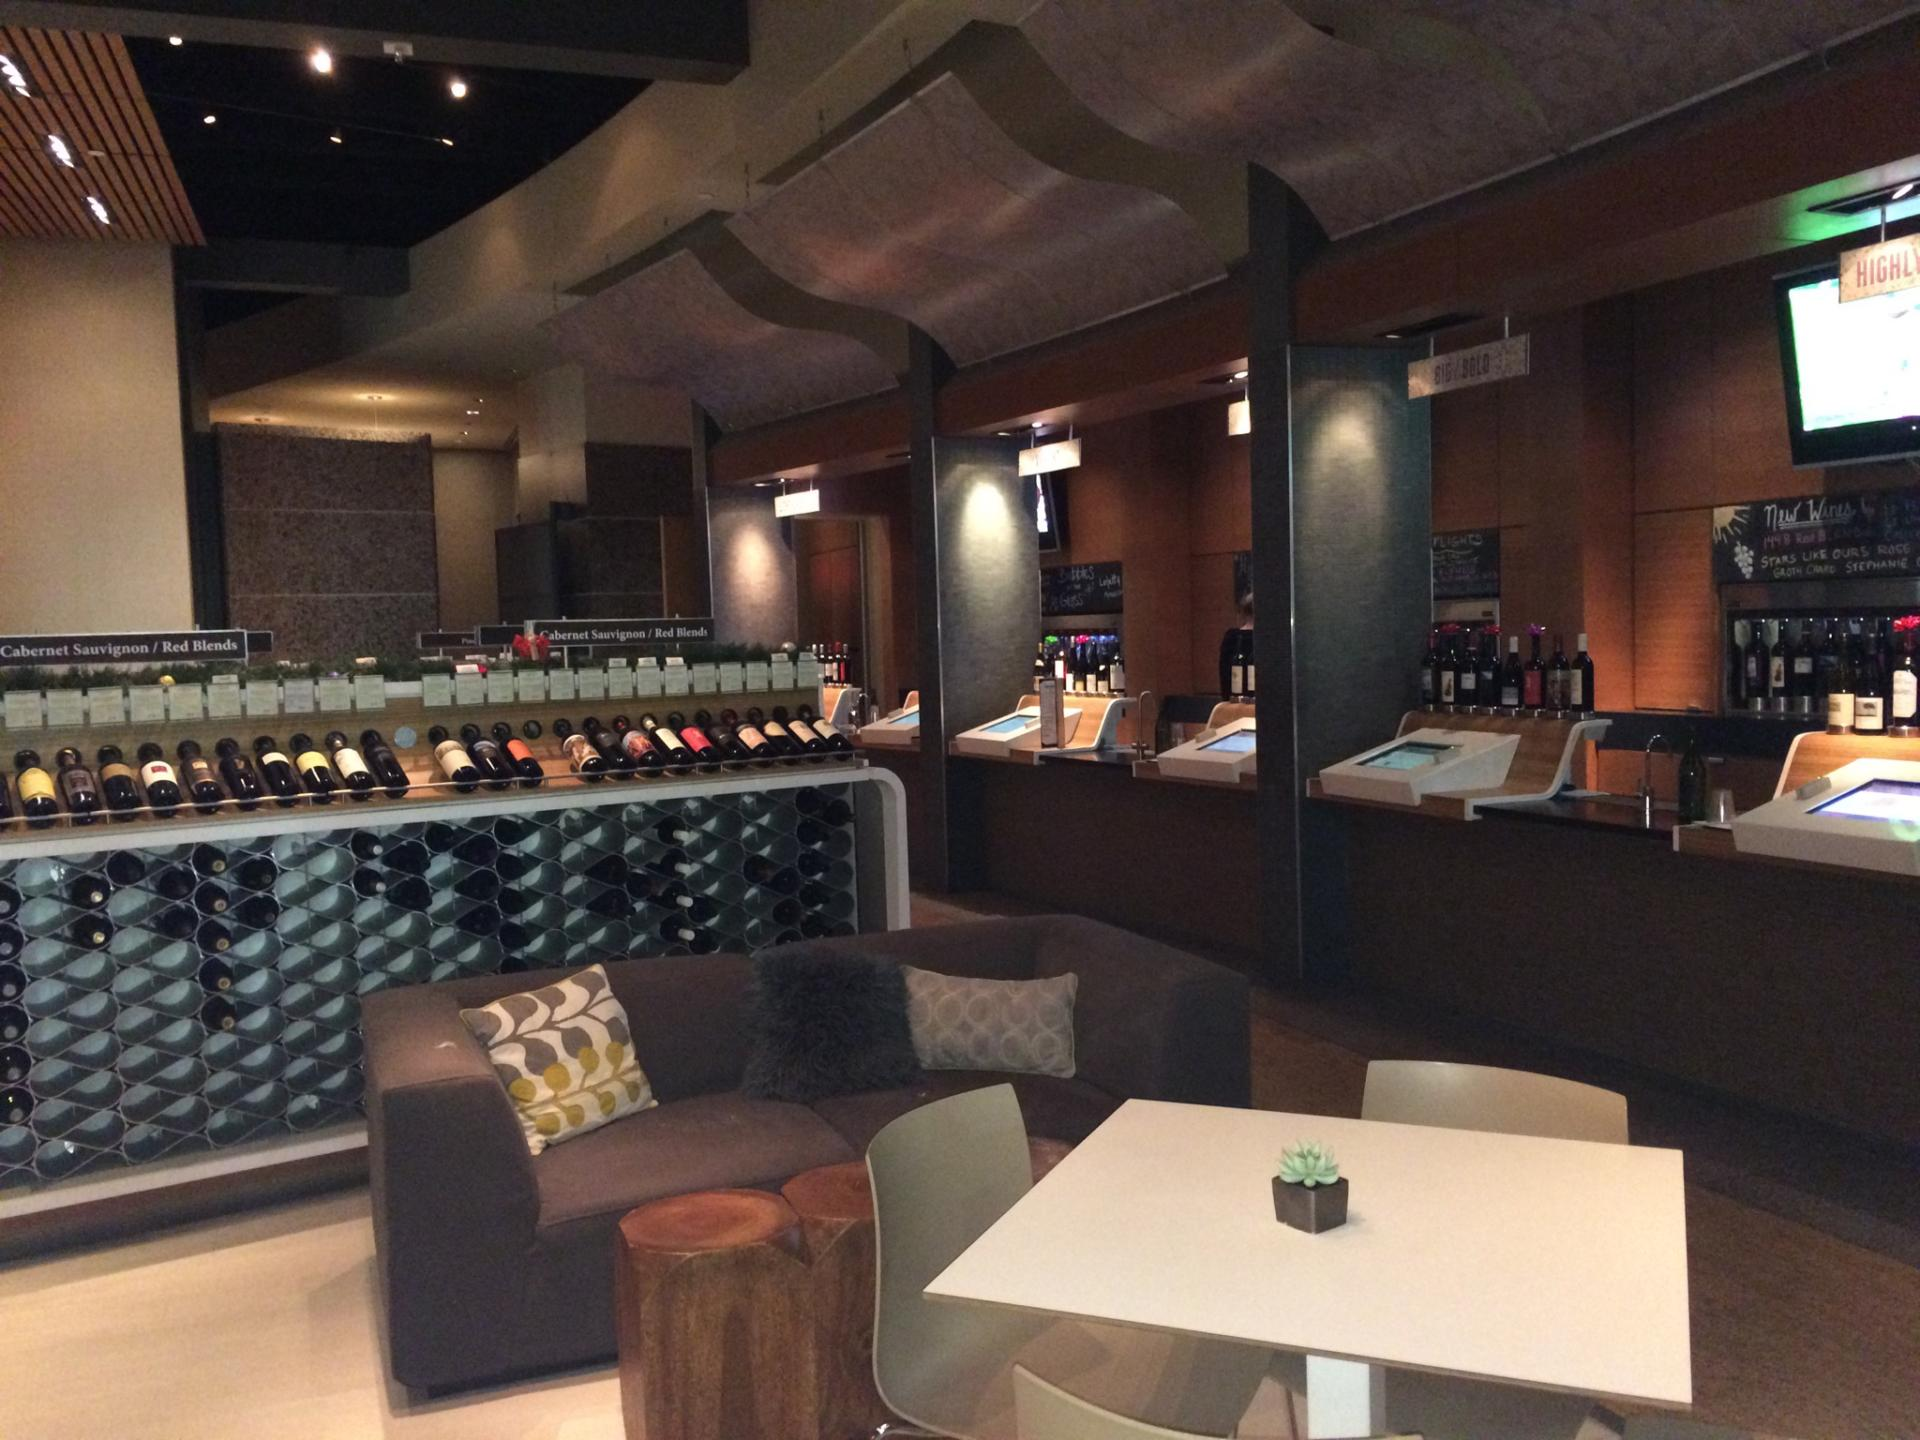 dallas cork wine bar review – your glass or mine?